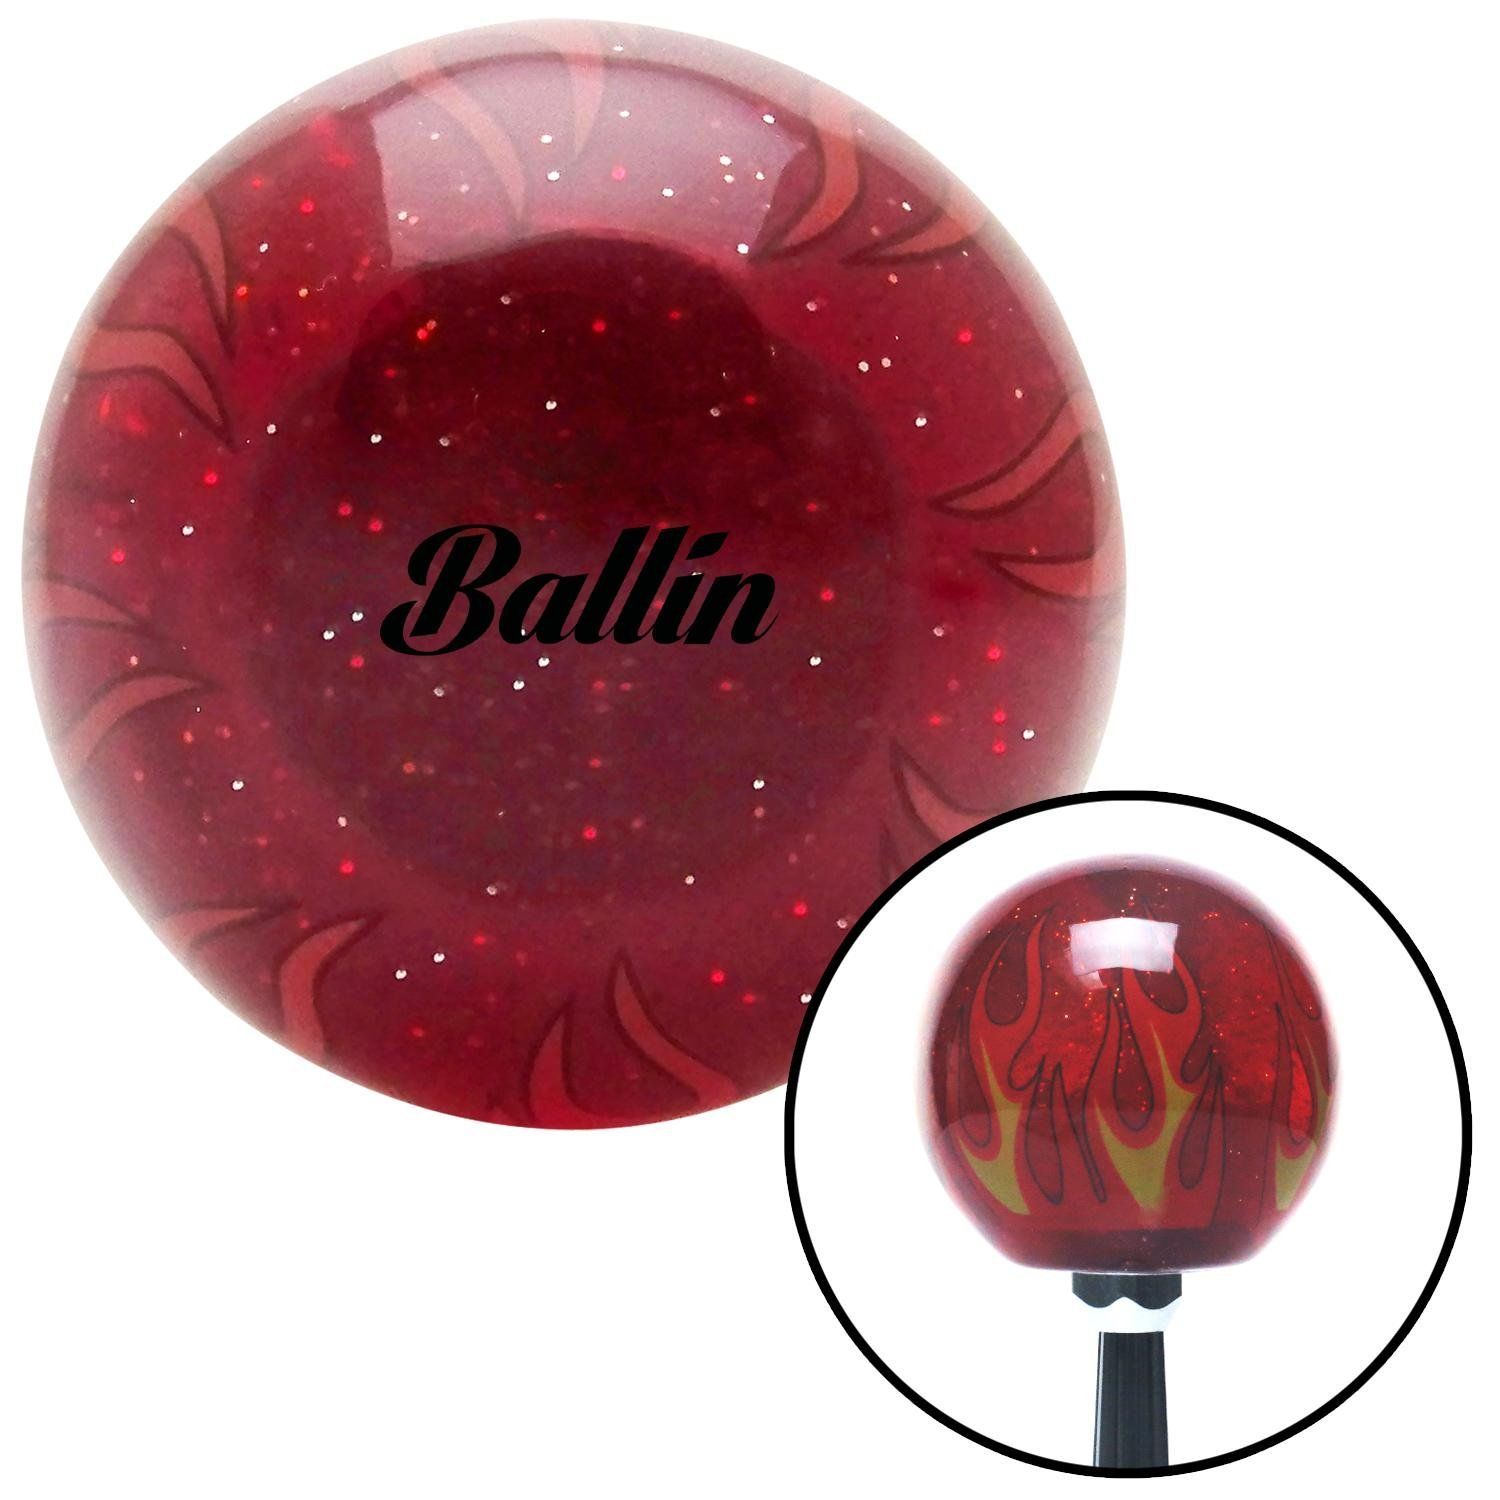 Red Breast Cancer Awareness American Shifter 234021 Clear Flame Metal Flake Shift Knob with M16 x 1.5 Insert